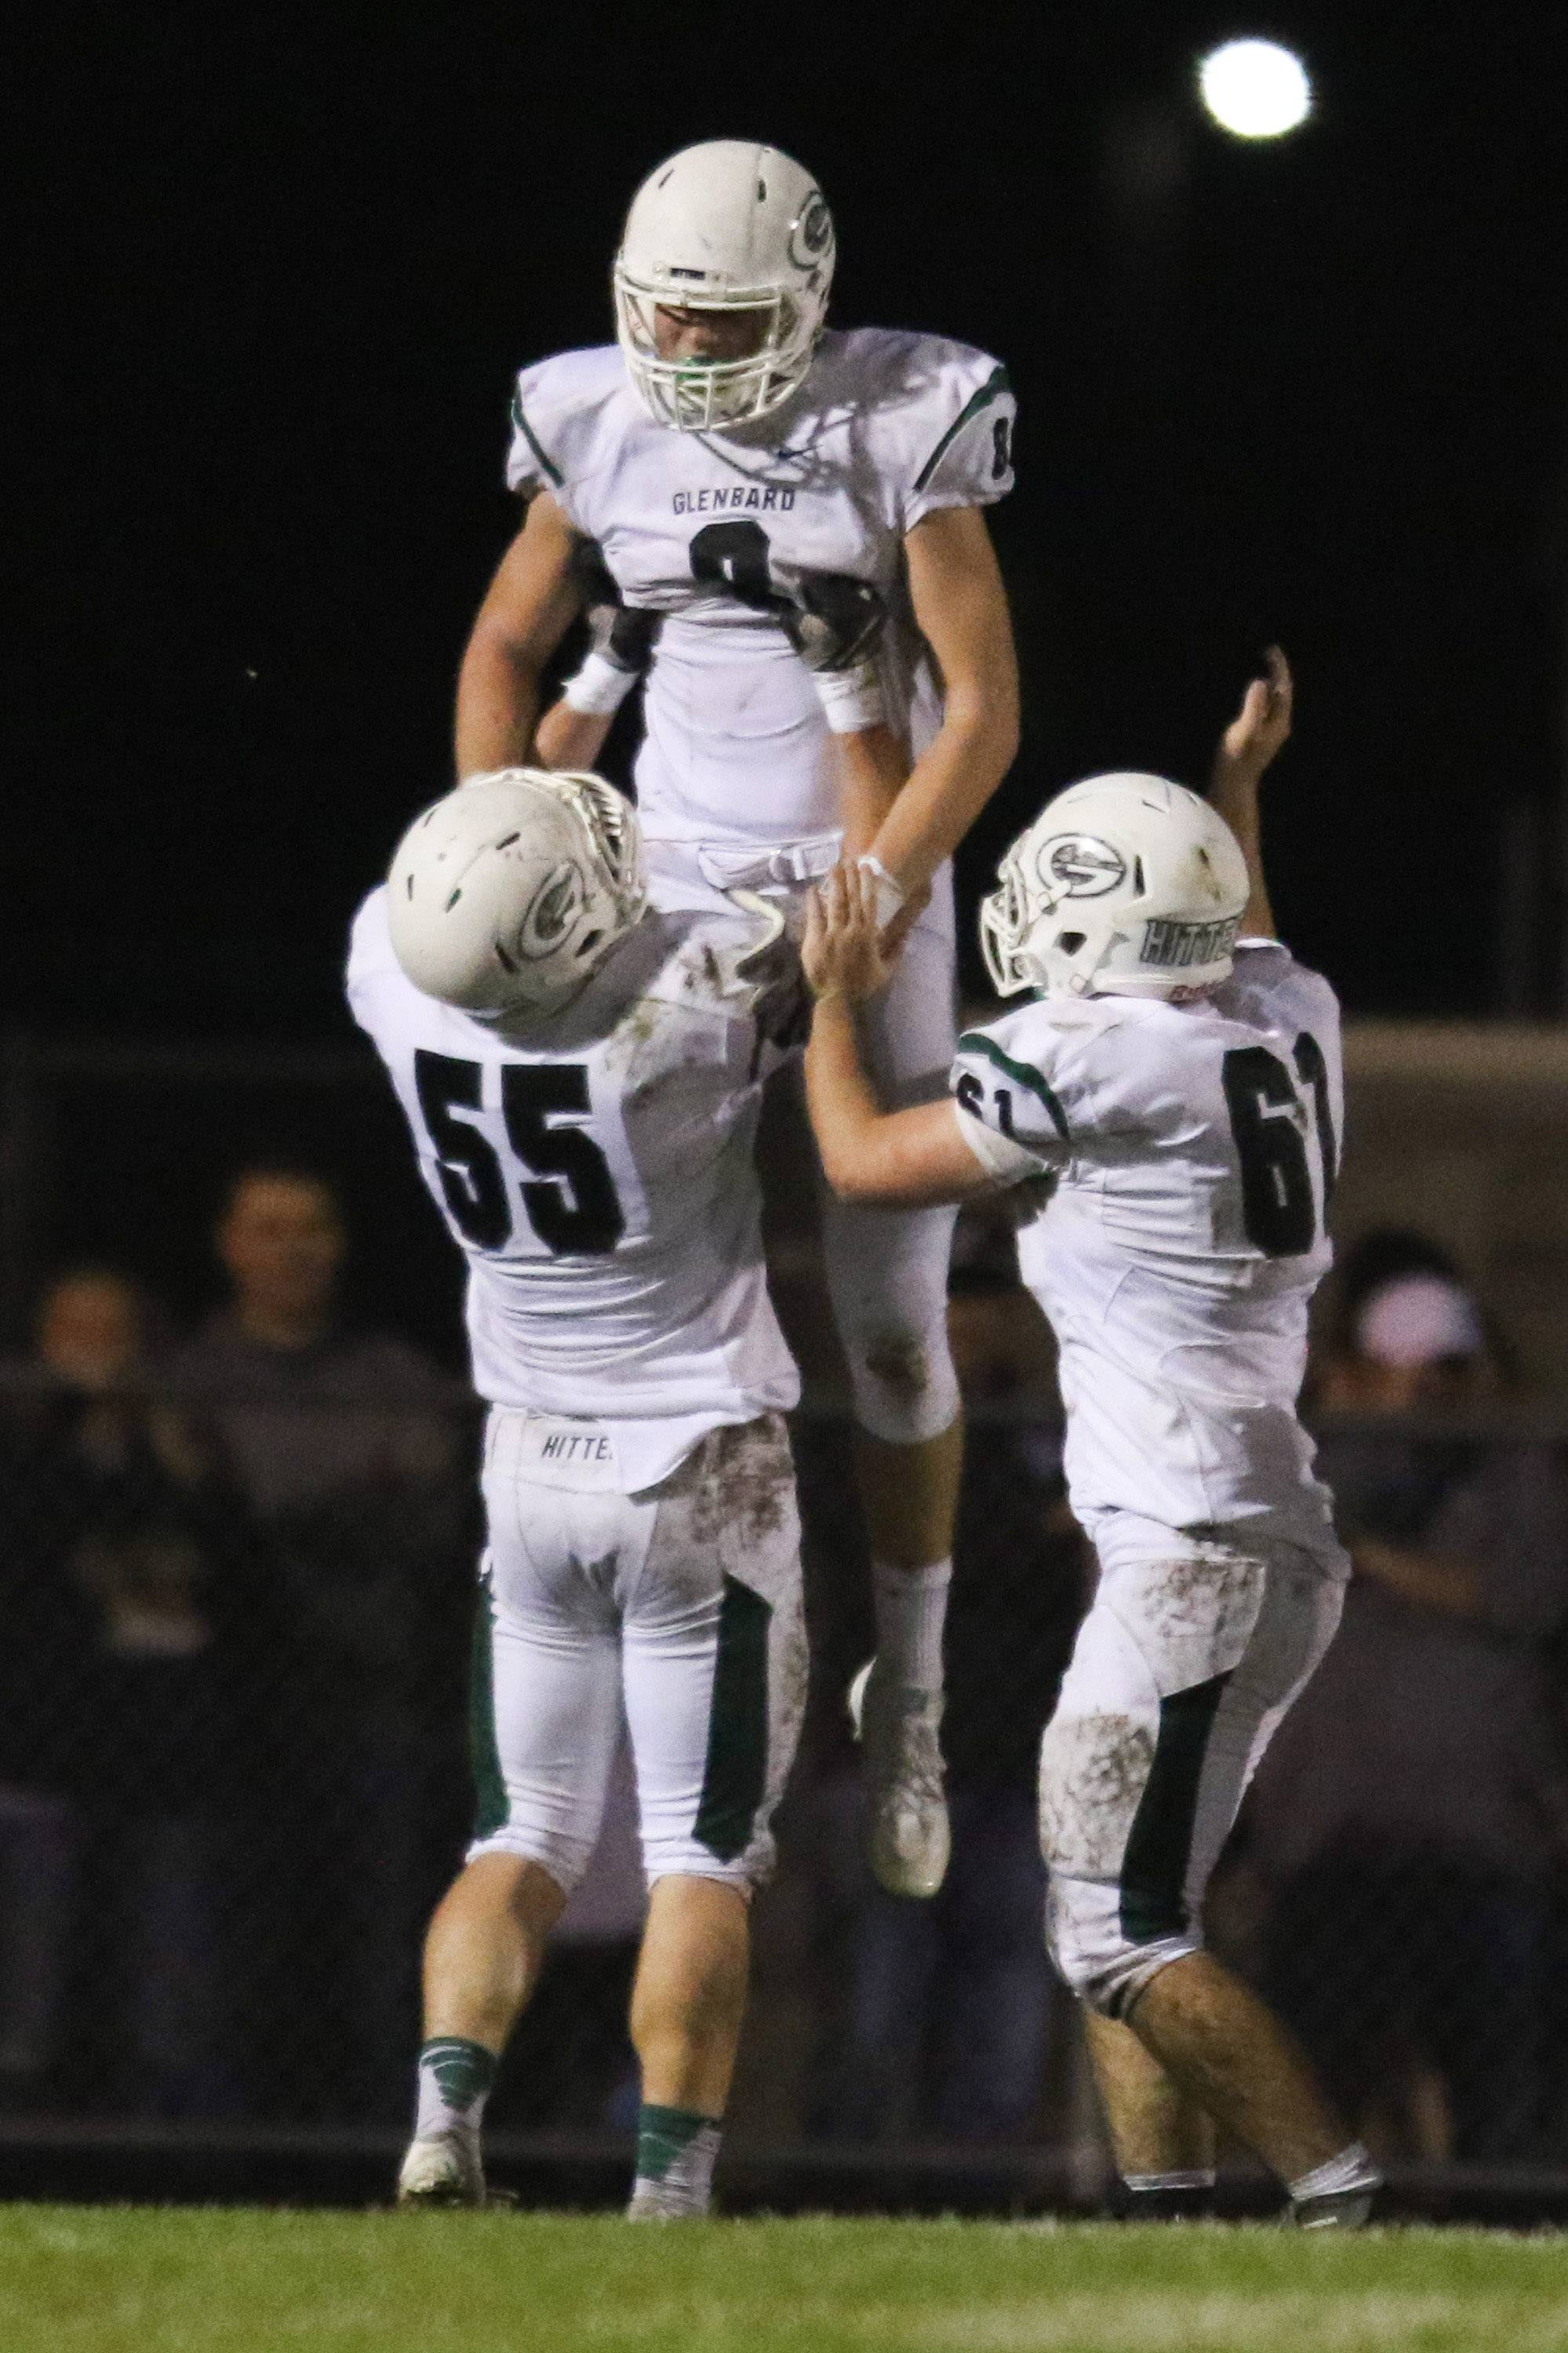 Glenbard West tight end Alex Pihlstrom (8) is lifted in the air by offensive lineman Will Farley (55) after scoring a touchdown against Neuqua Valley at Neuqua Valley High School in Naperville, IL on Saturday, October 29, 2016